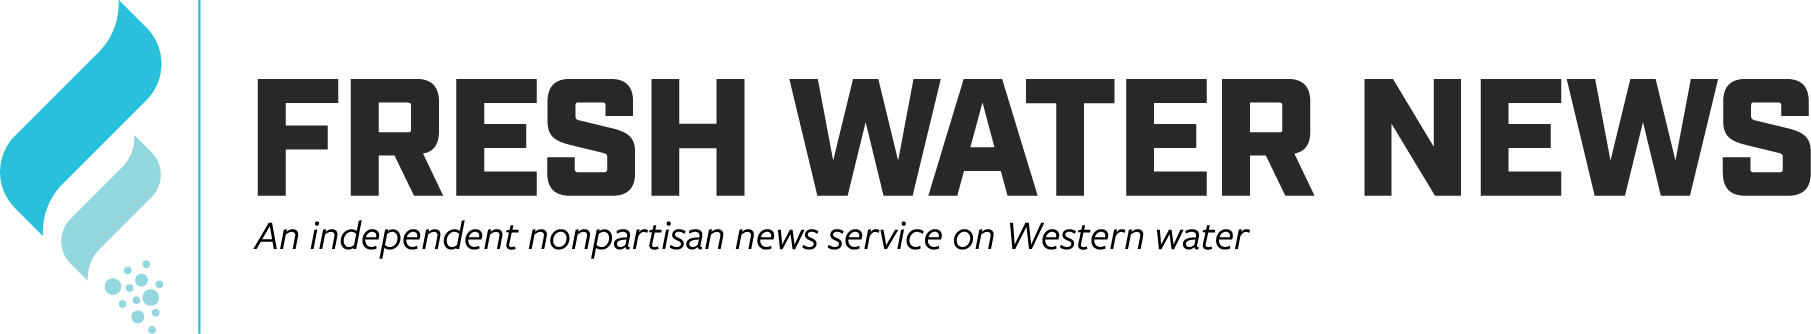 Fresh Water News. An independent nonpartisan news service on Western water.